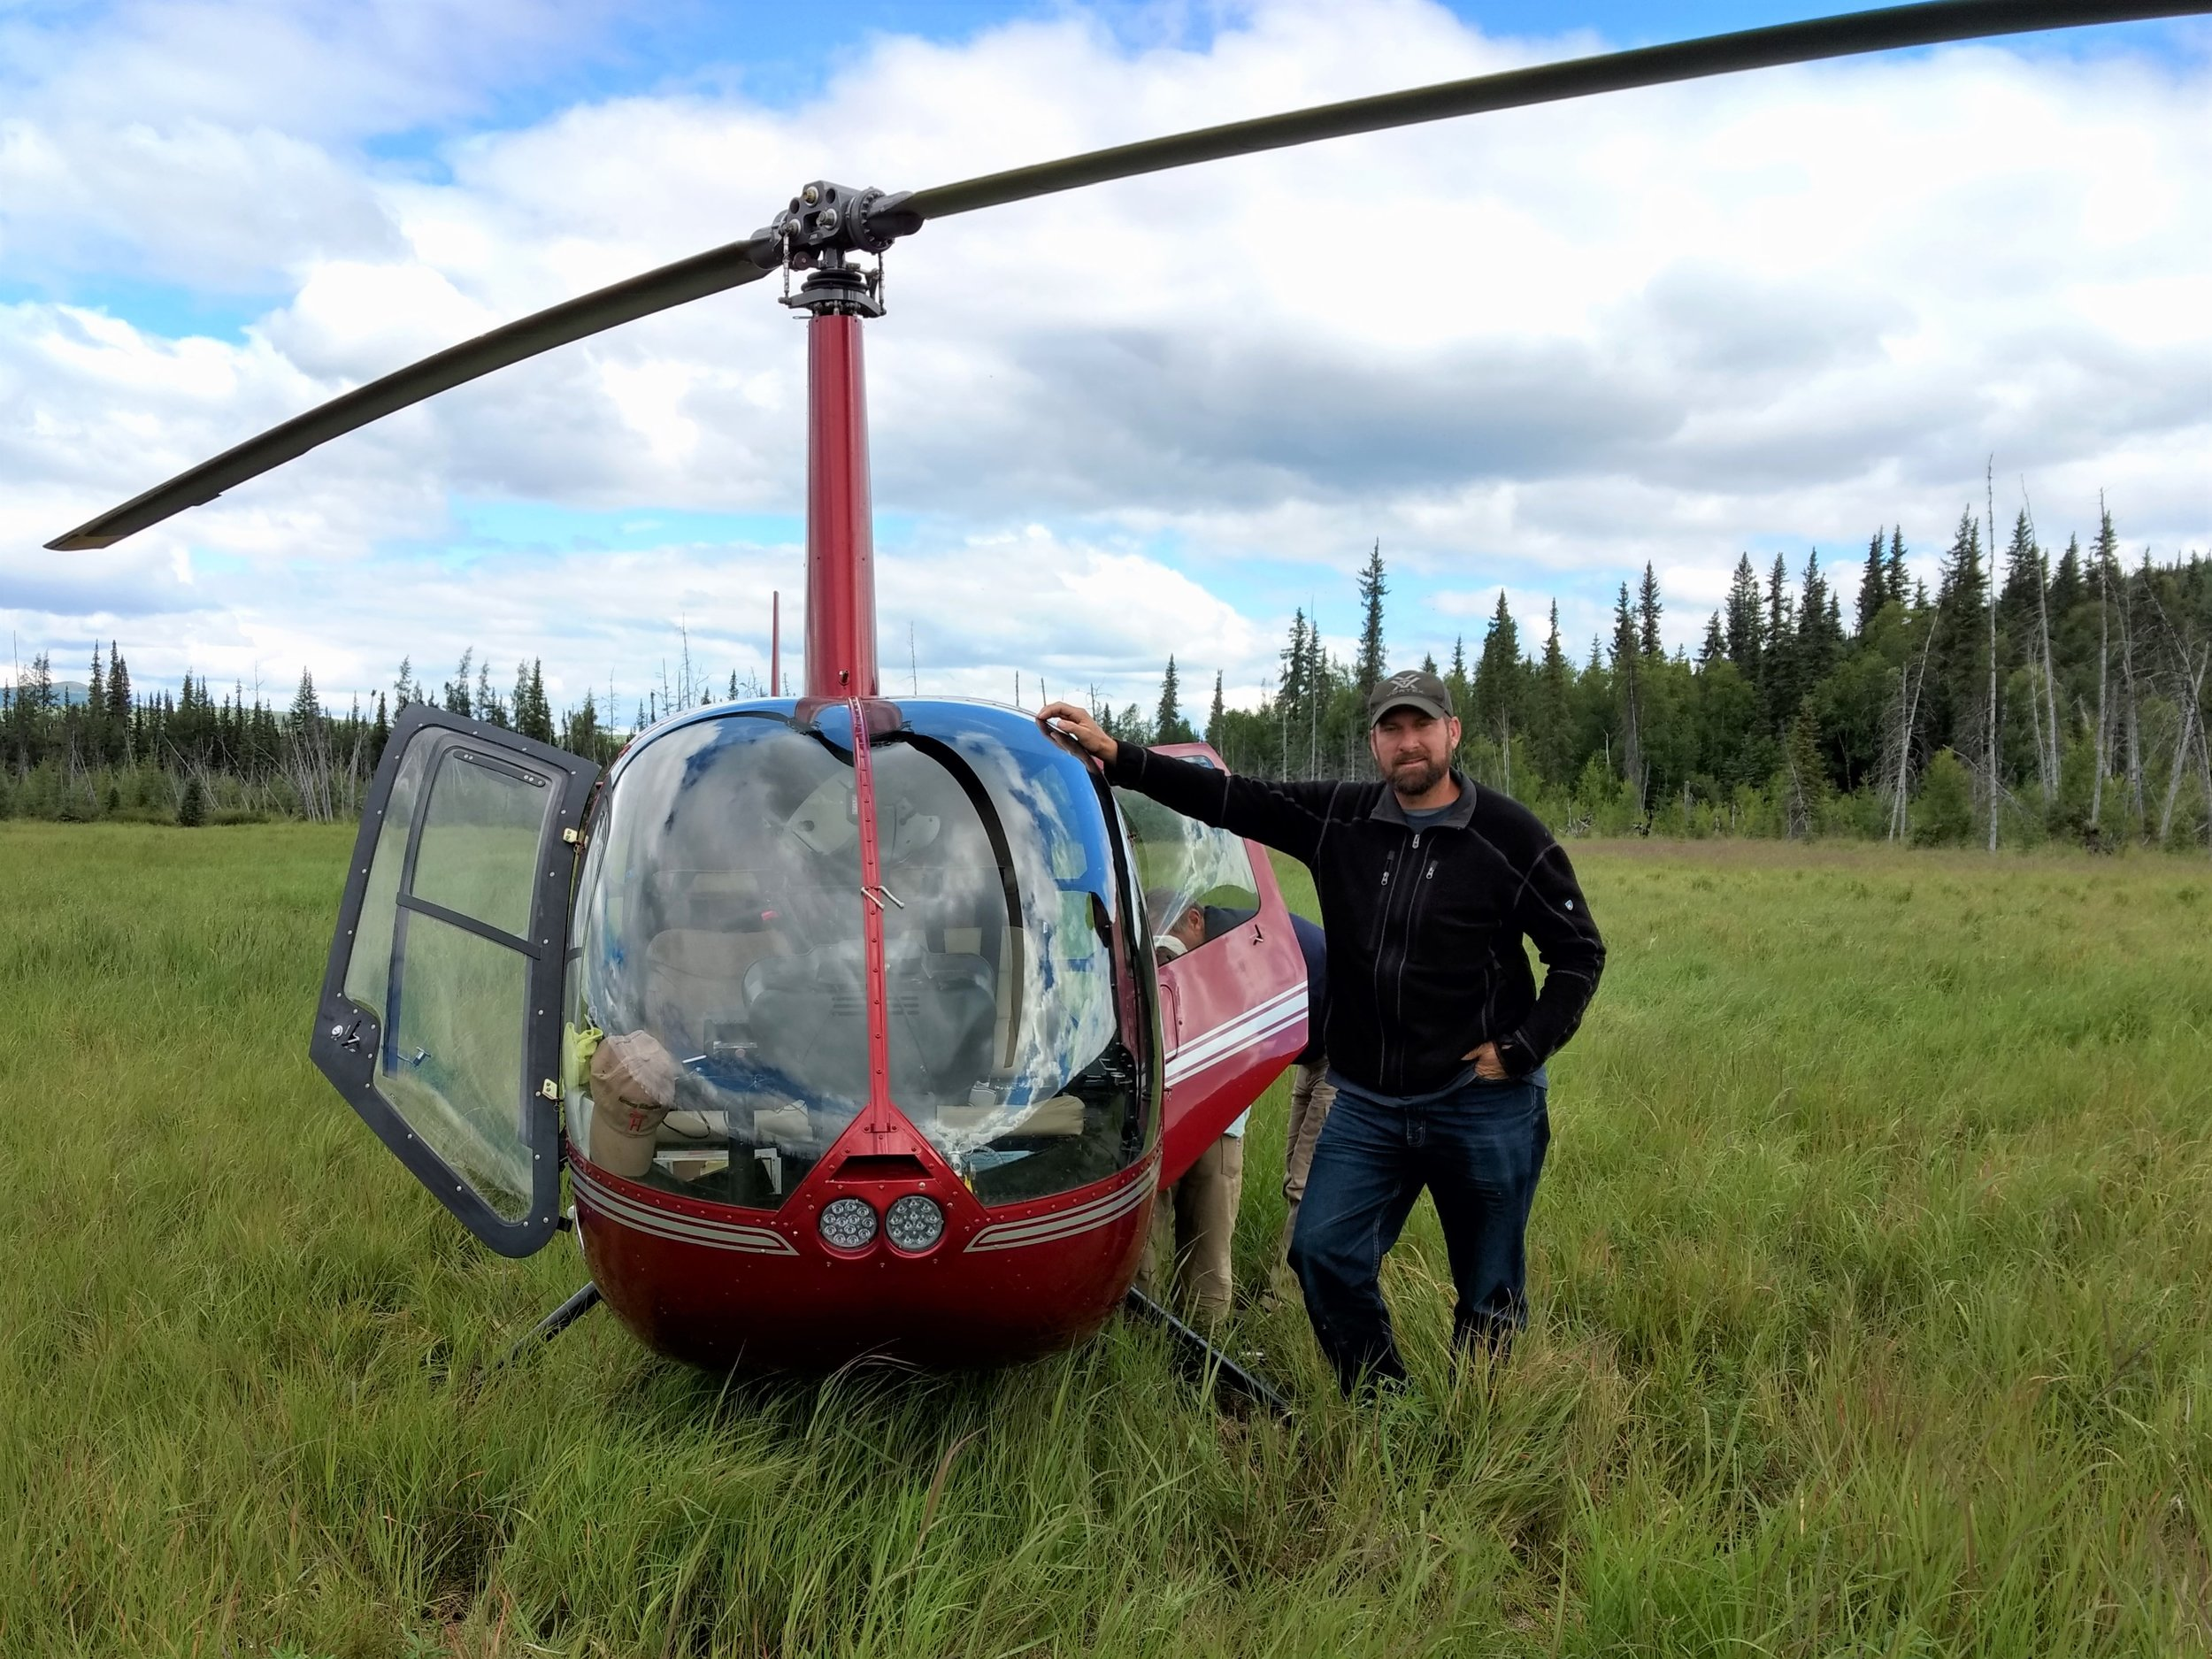 Kevin stark (Saint Mary's University - GeoSpatial Services) and the R44 helicopter landed in a wet meadow.  Photo Credit: Andy Robertson